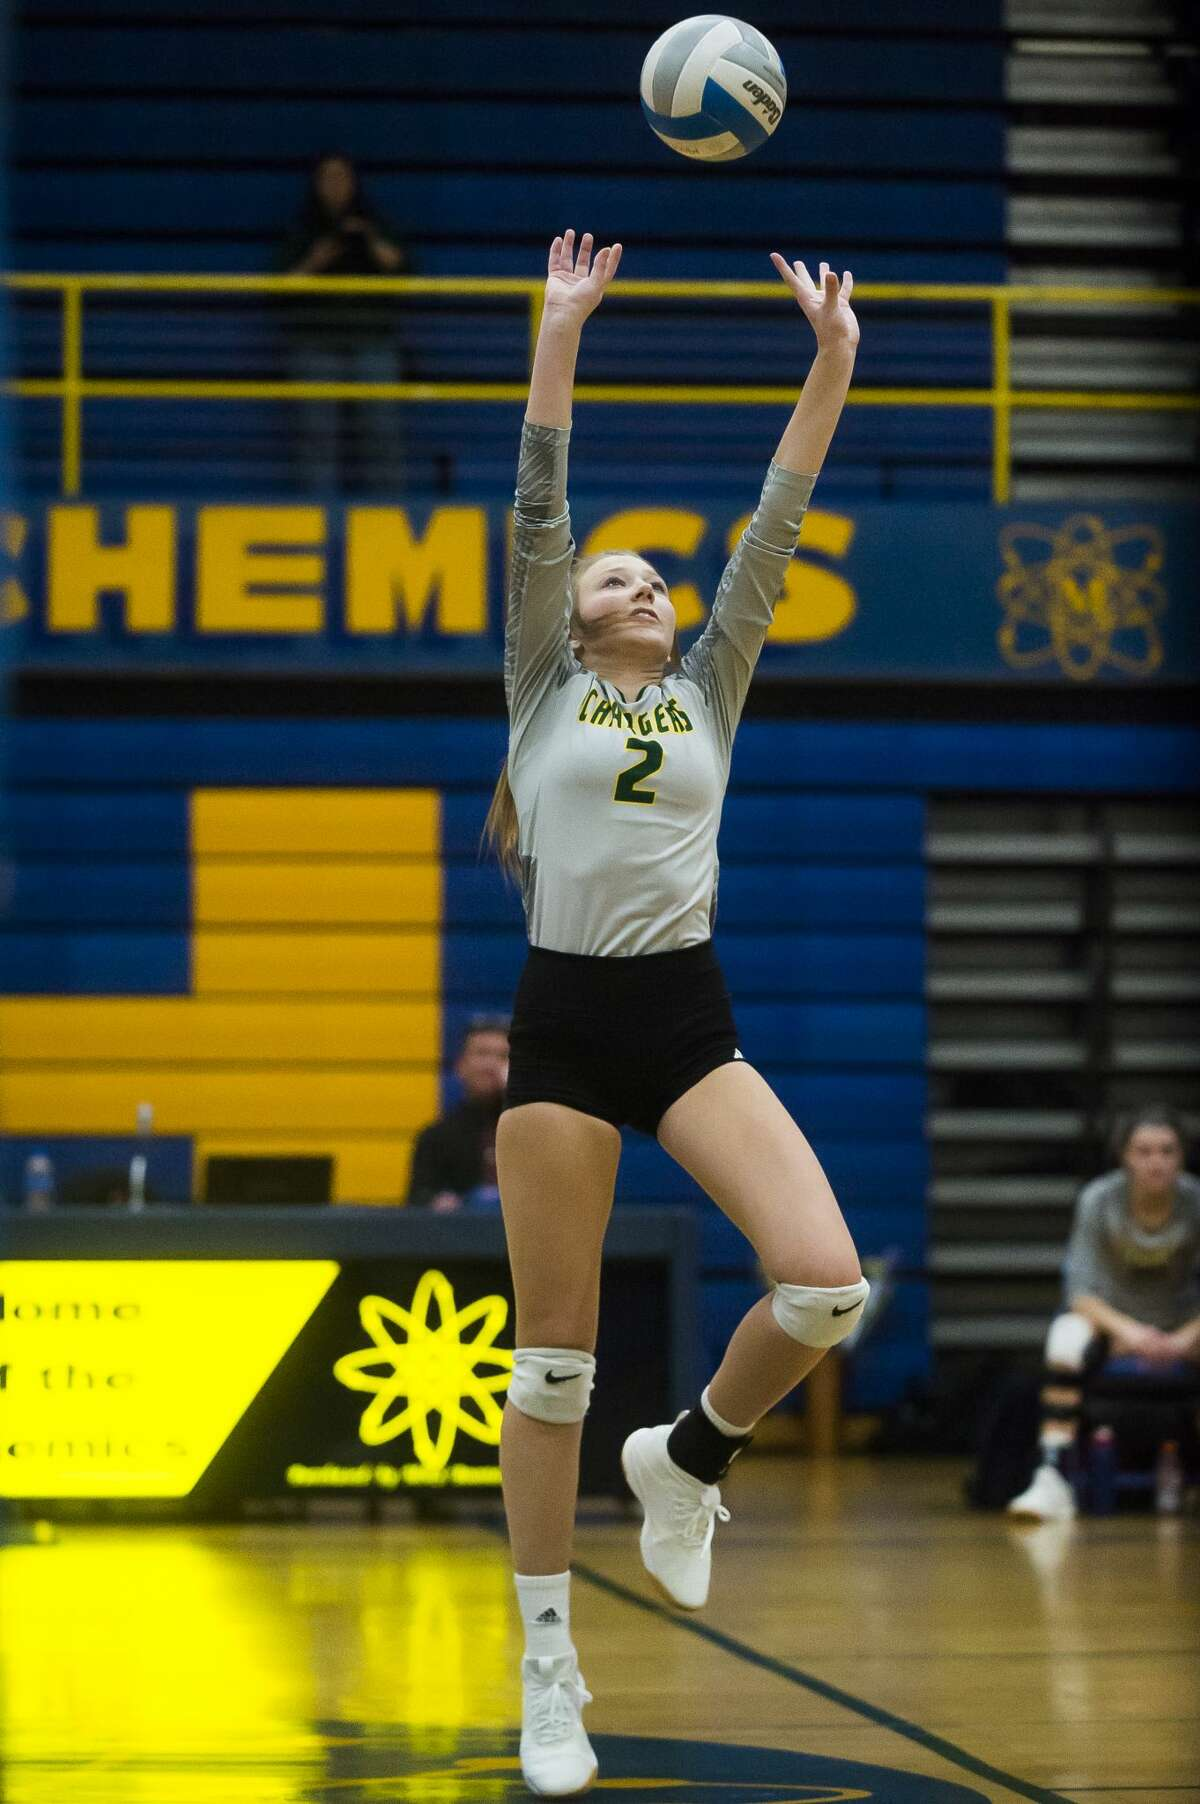 Dow's Laura Hershauer sets the ball during a match against Midland Tuesday, Oct. 22, 2019 at Midland High School. (Katy Kildee/kkildee@mdn.net)